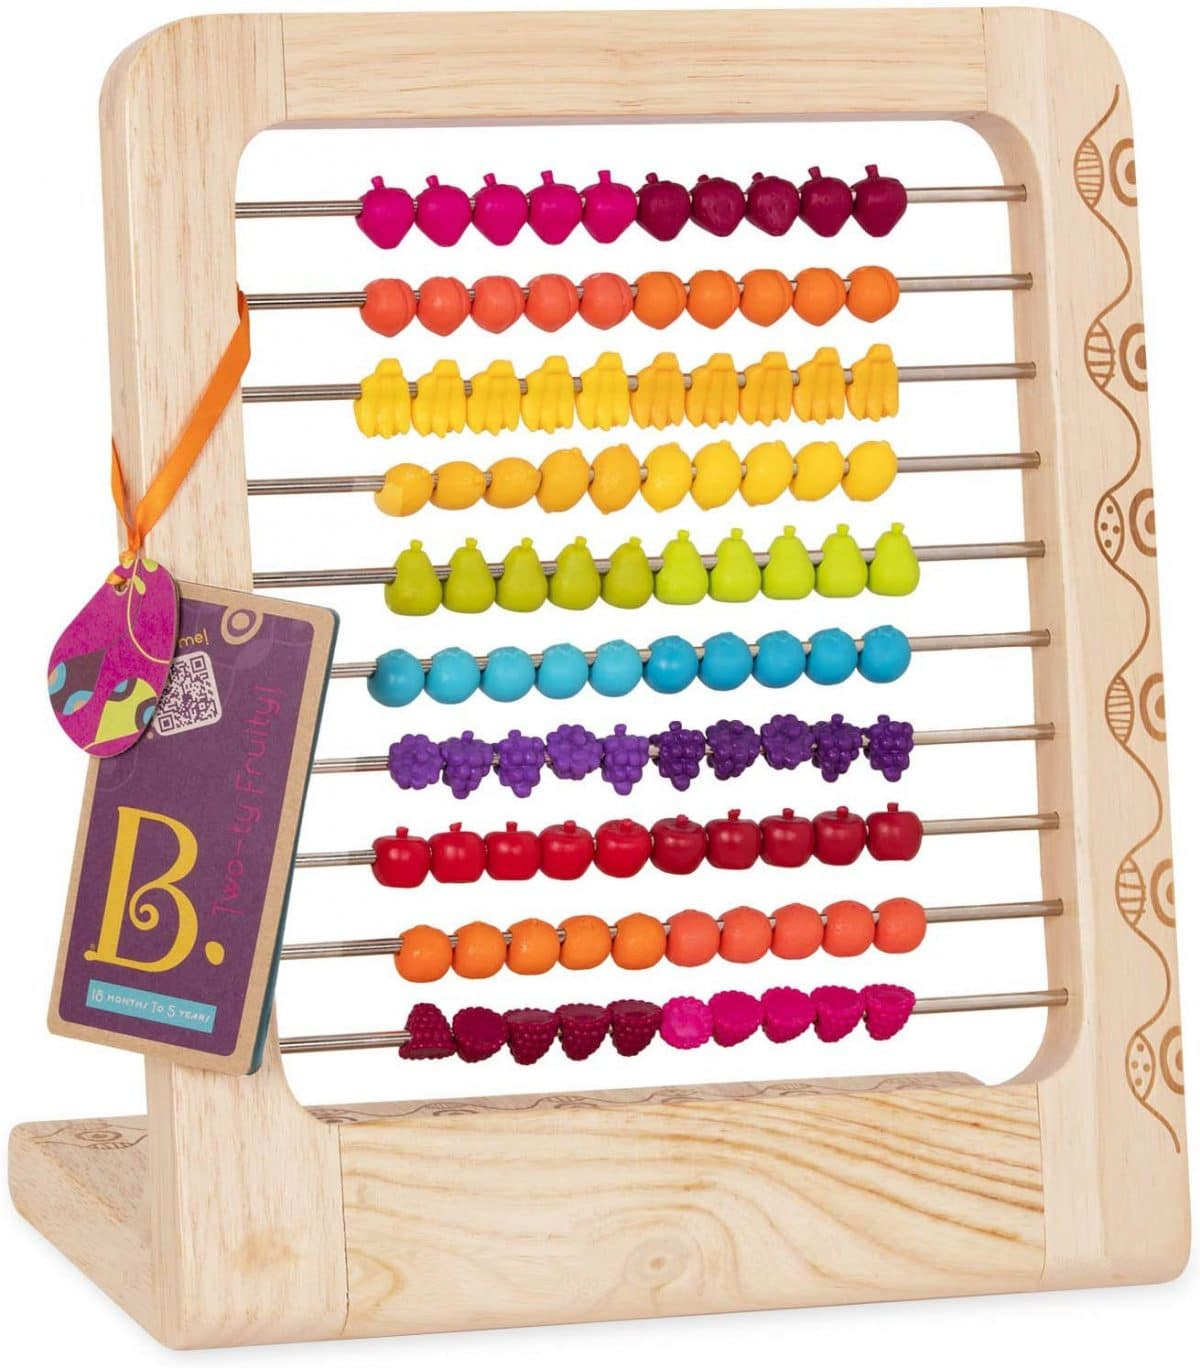 1,5 wooden activities tokens for kids and children educative games activity toys educational toys for children